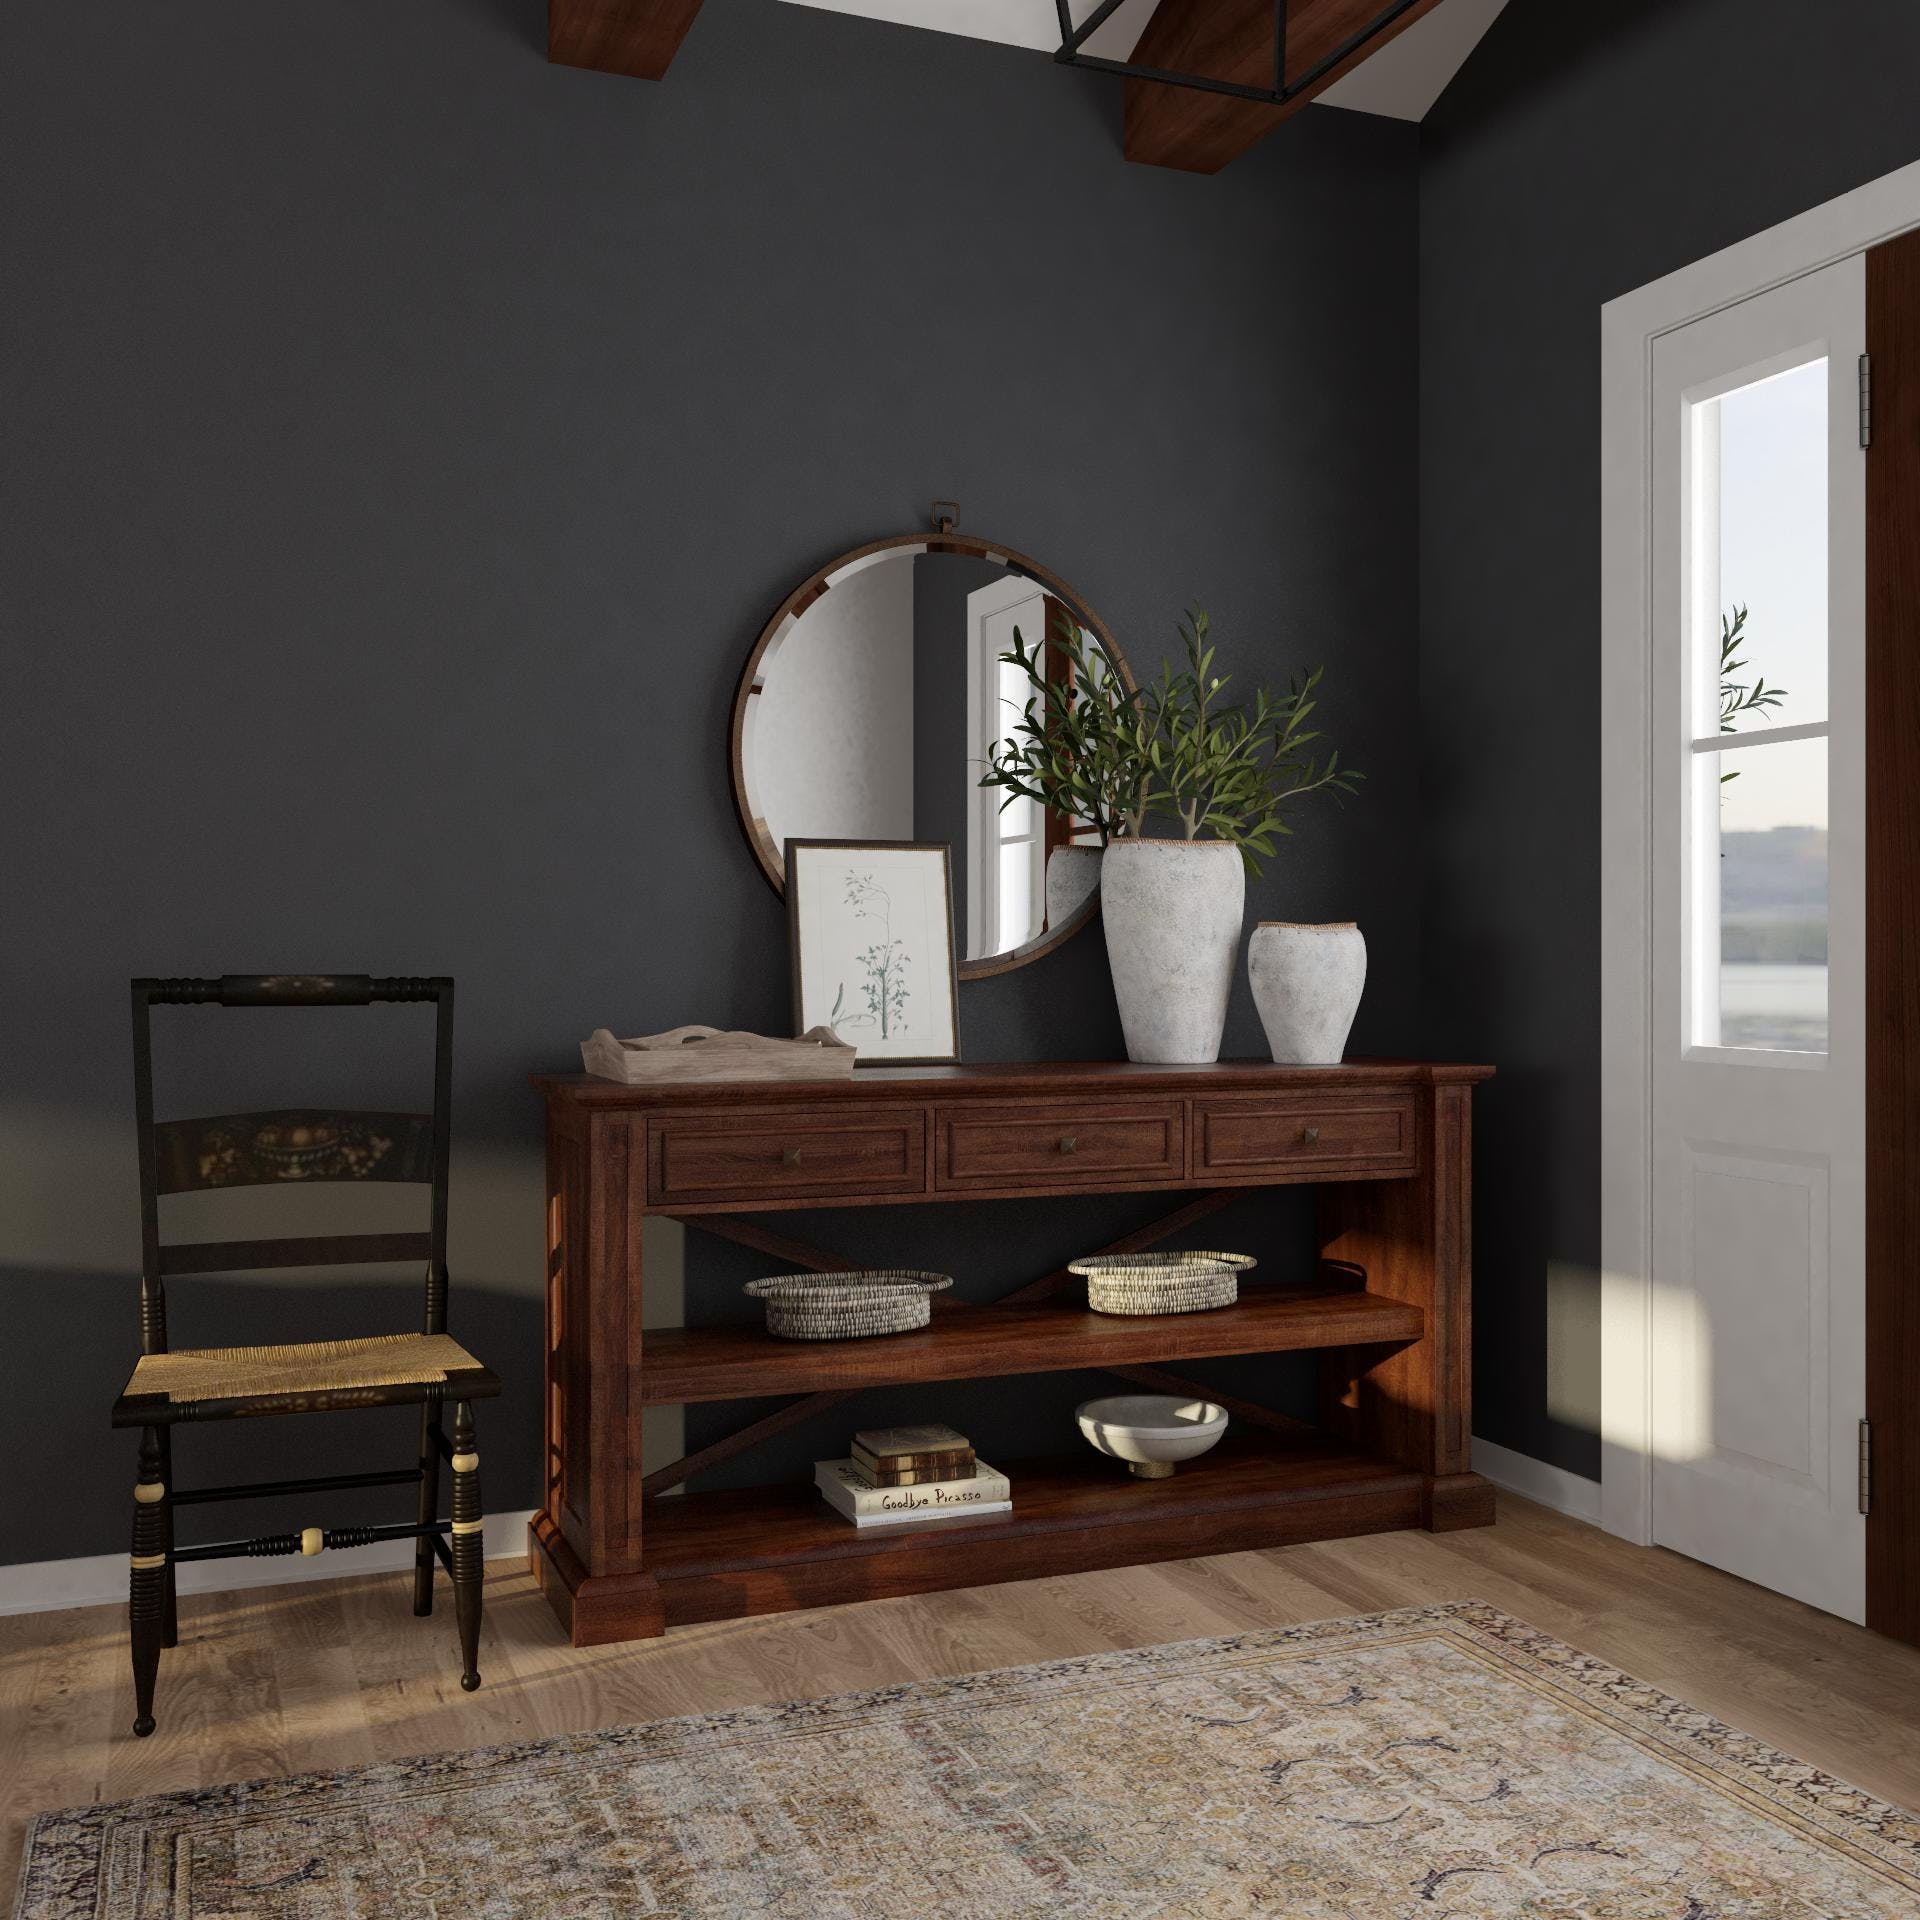 New Traditional Entryway in Moody Hues